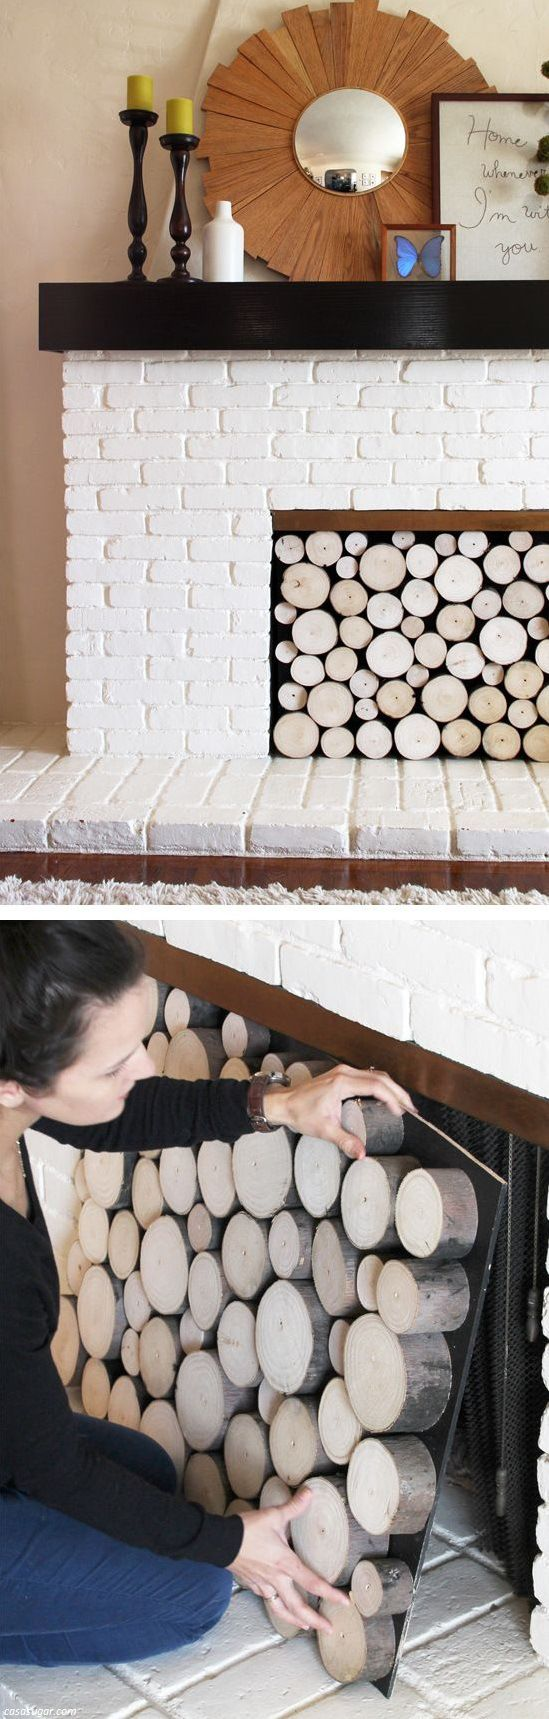 Stupell yorkie dog 3 panel decorative fireplace screen - Diy Way To Style A Non Working Fireplace